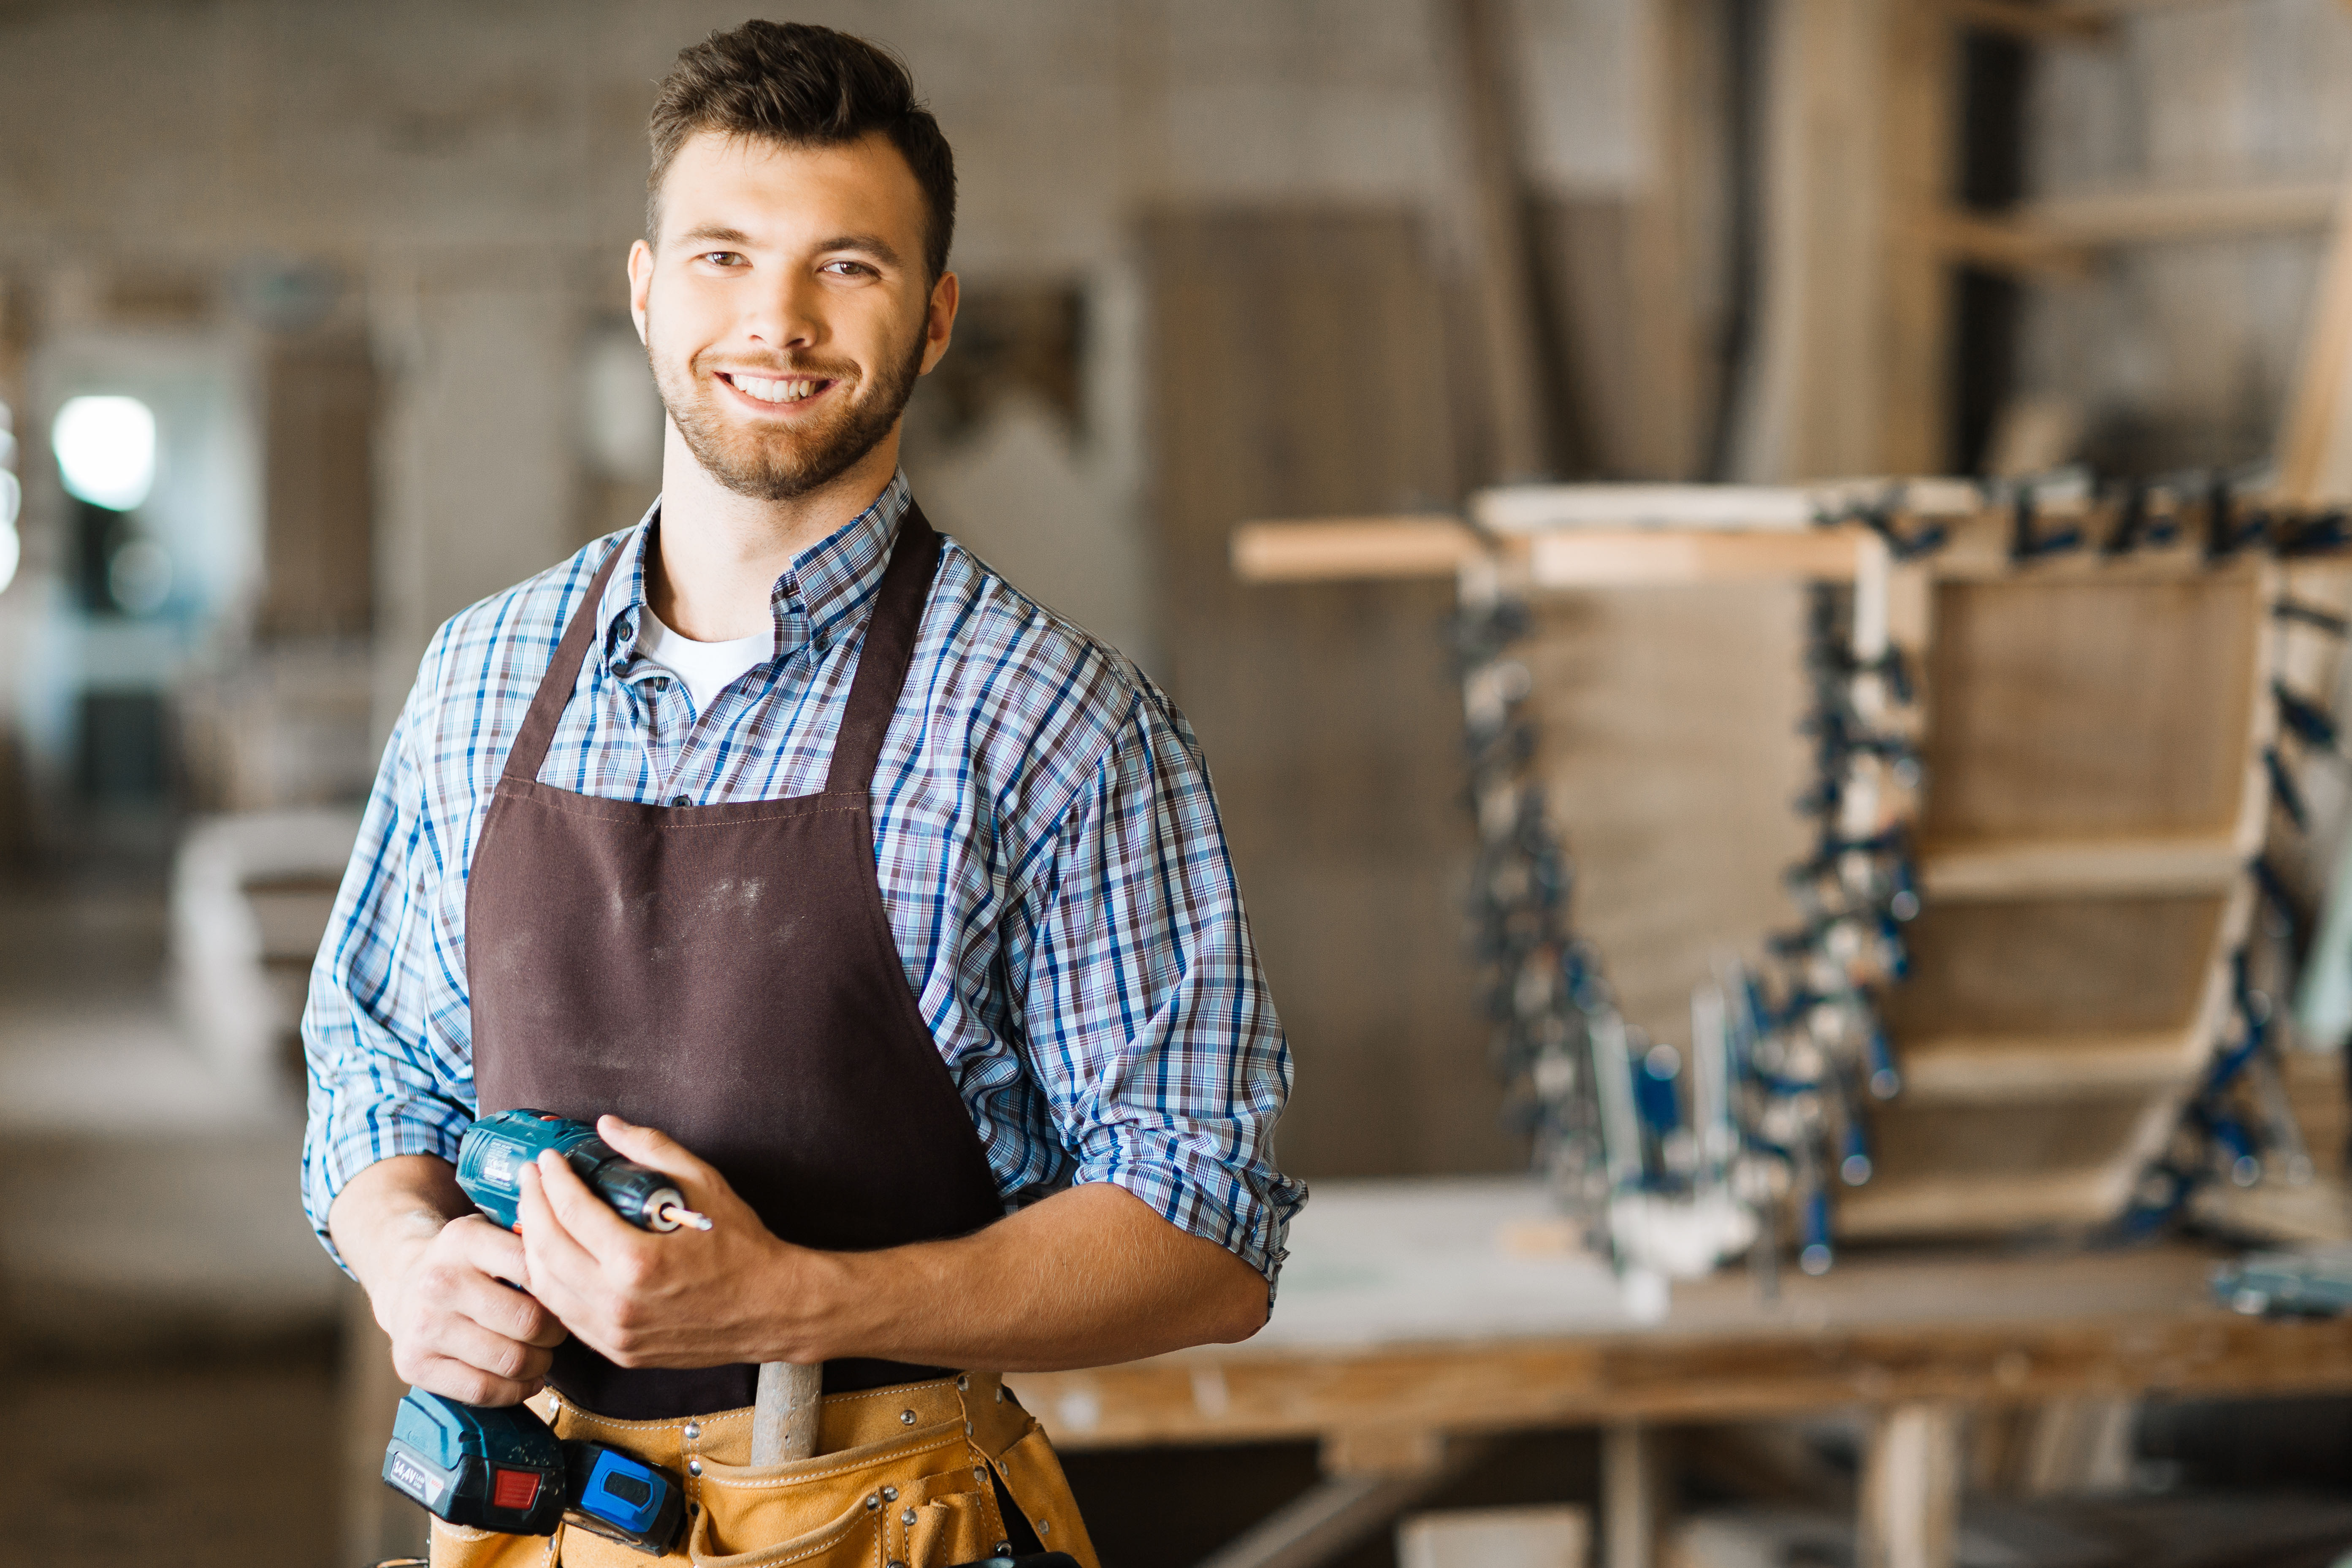 Small Business Owners Bellevue, NE Miller Financial Group